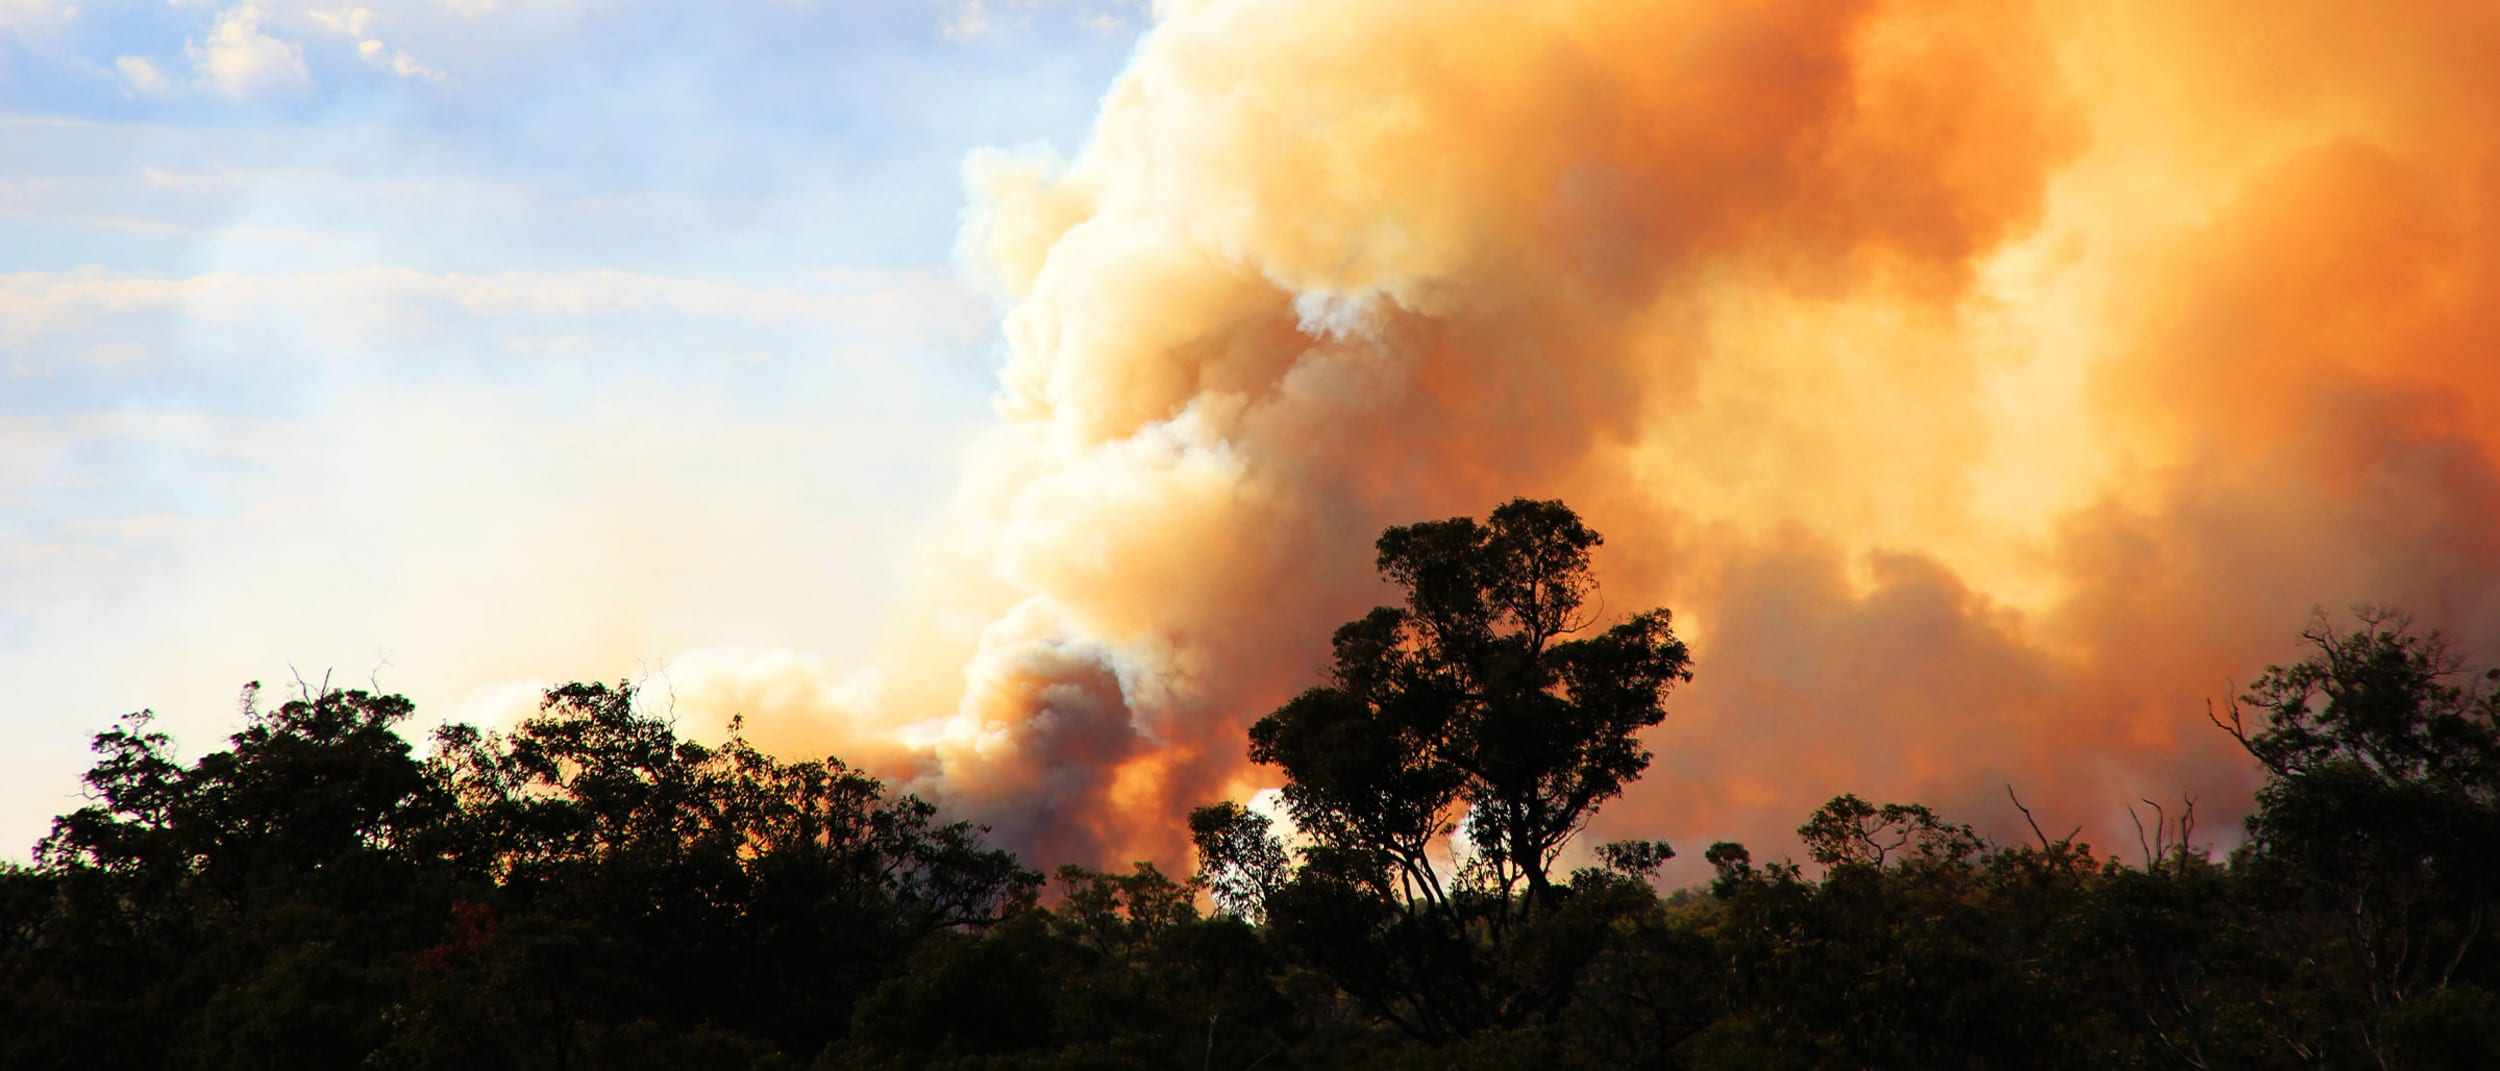 Support for the Australian bushfire appeals